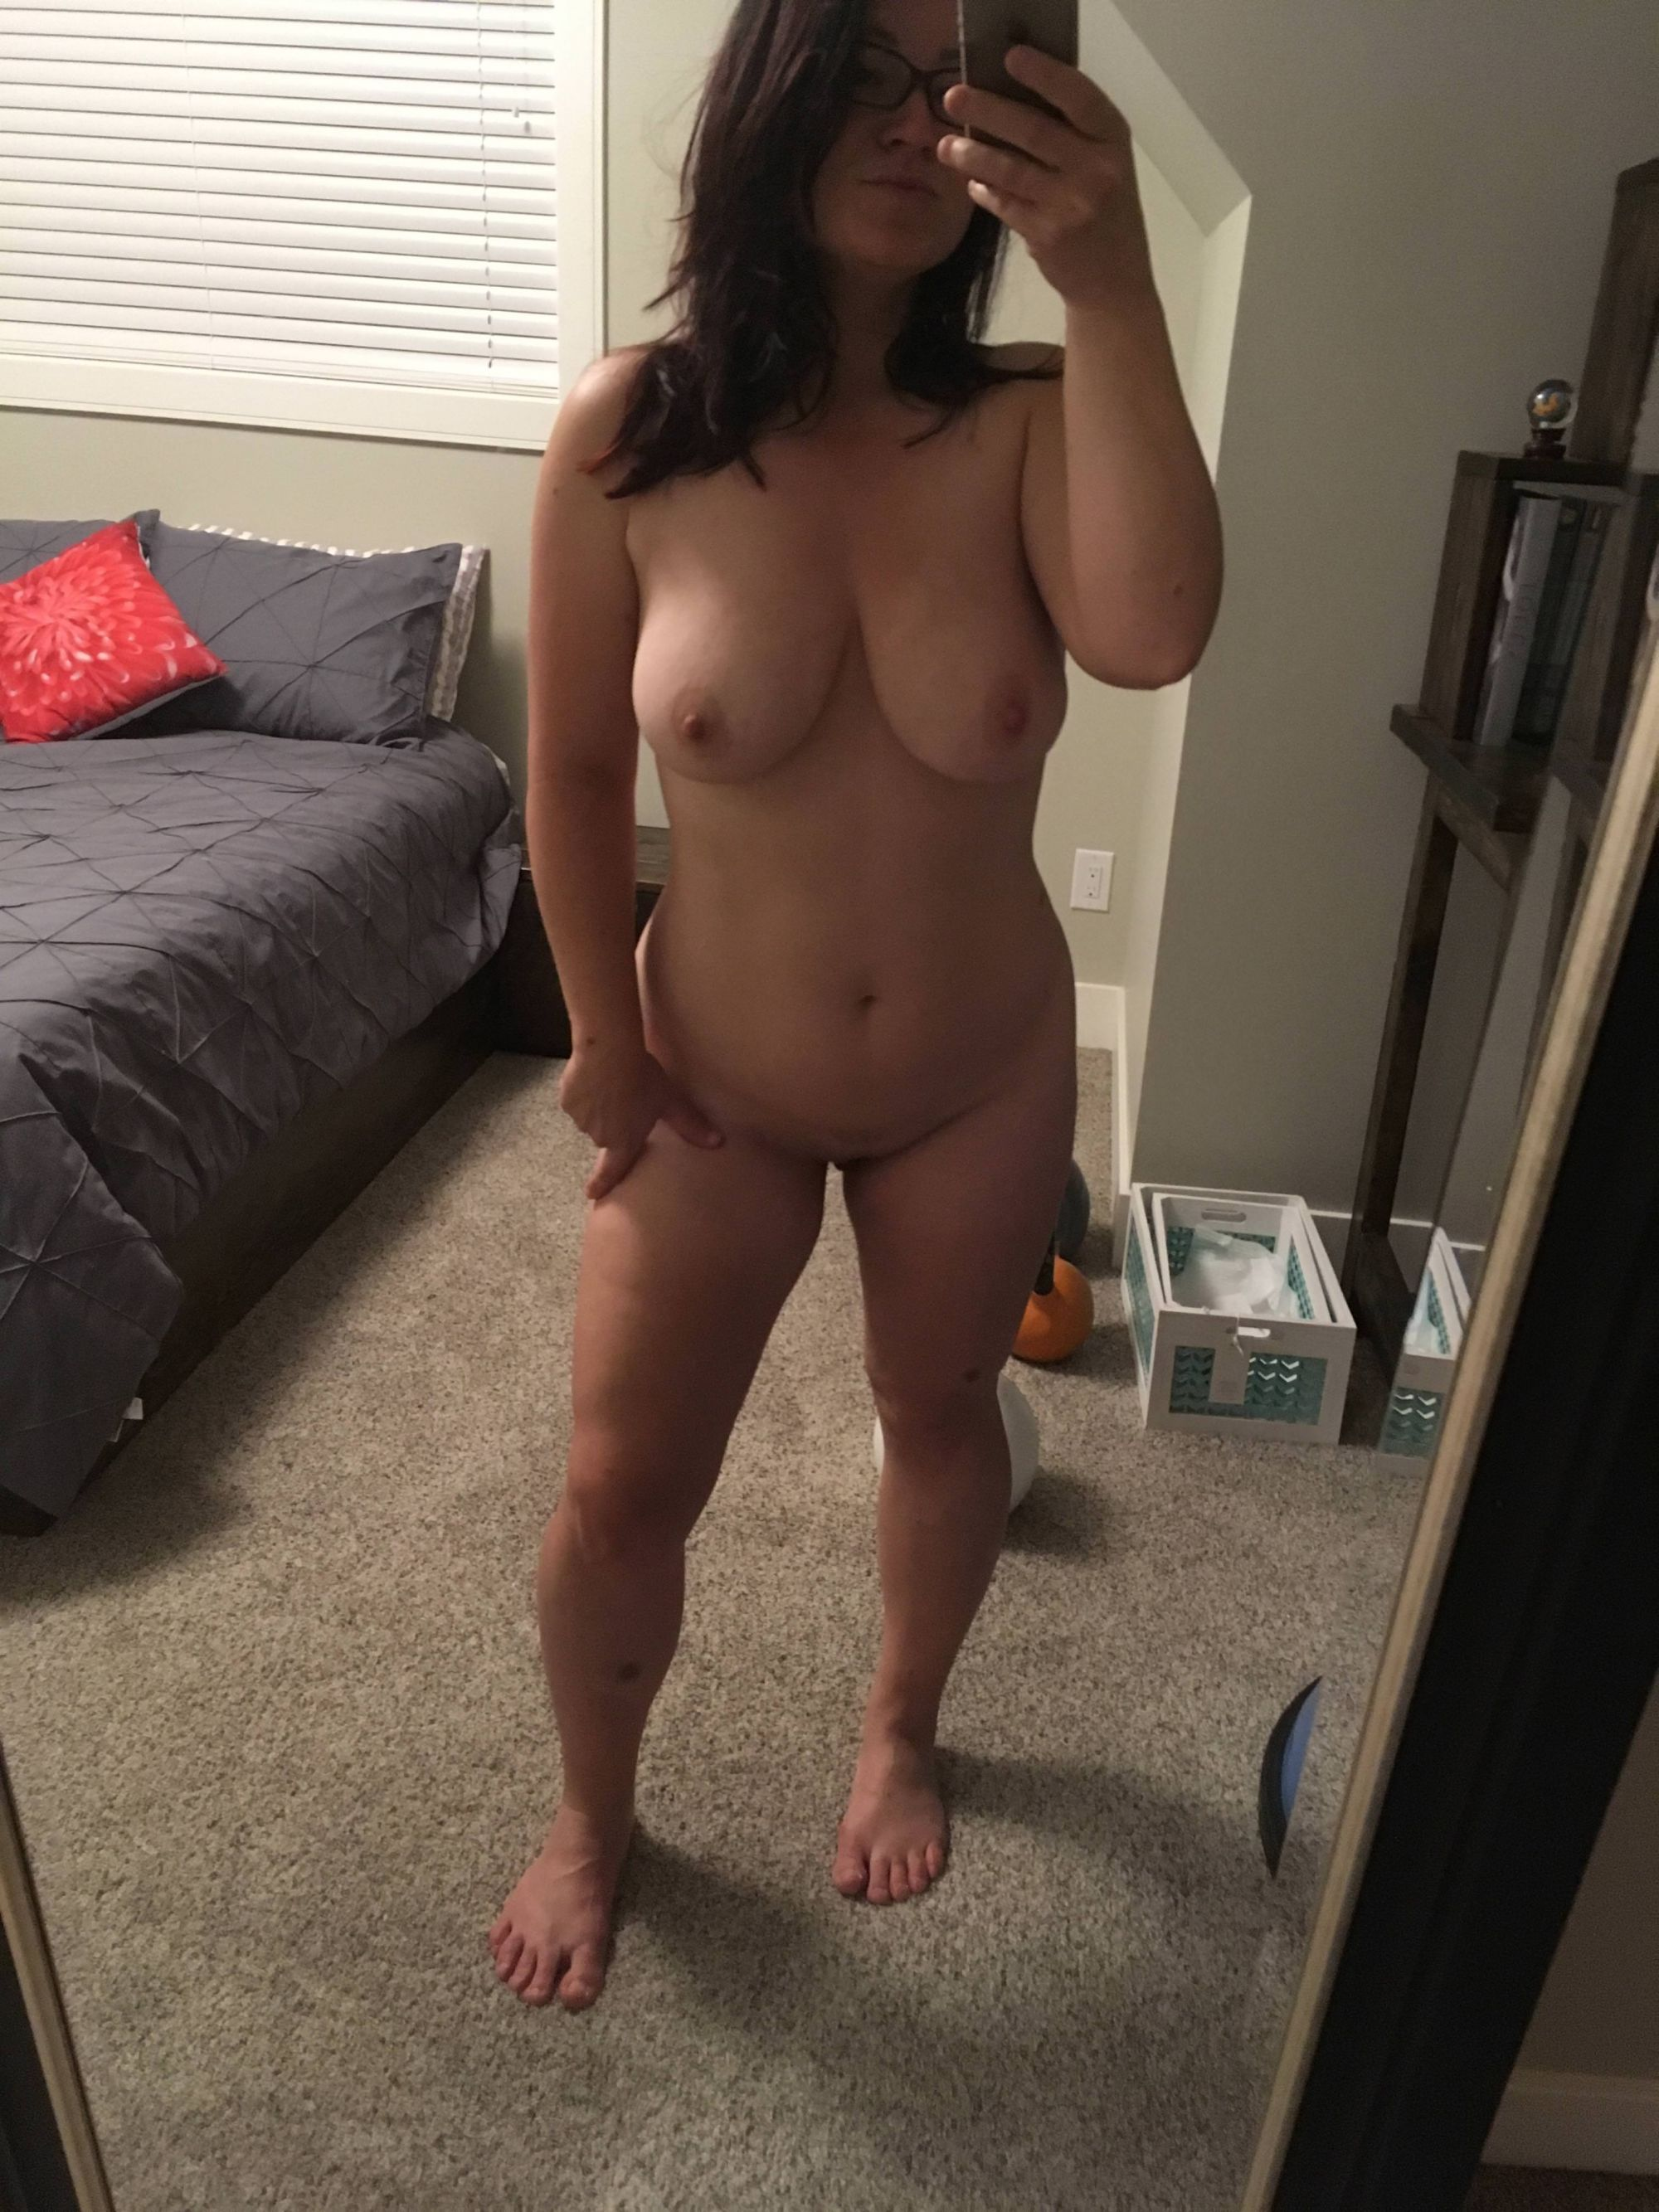 Best thing about being home - walking around naked! [F]35